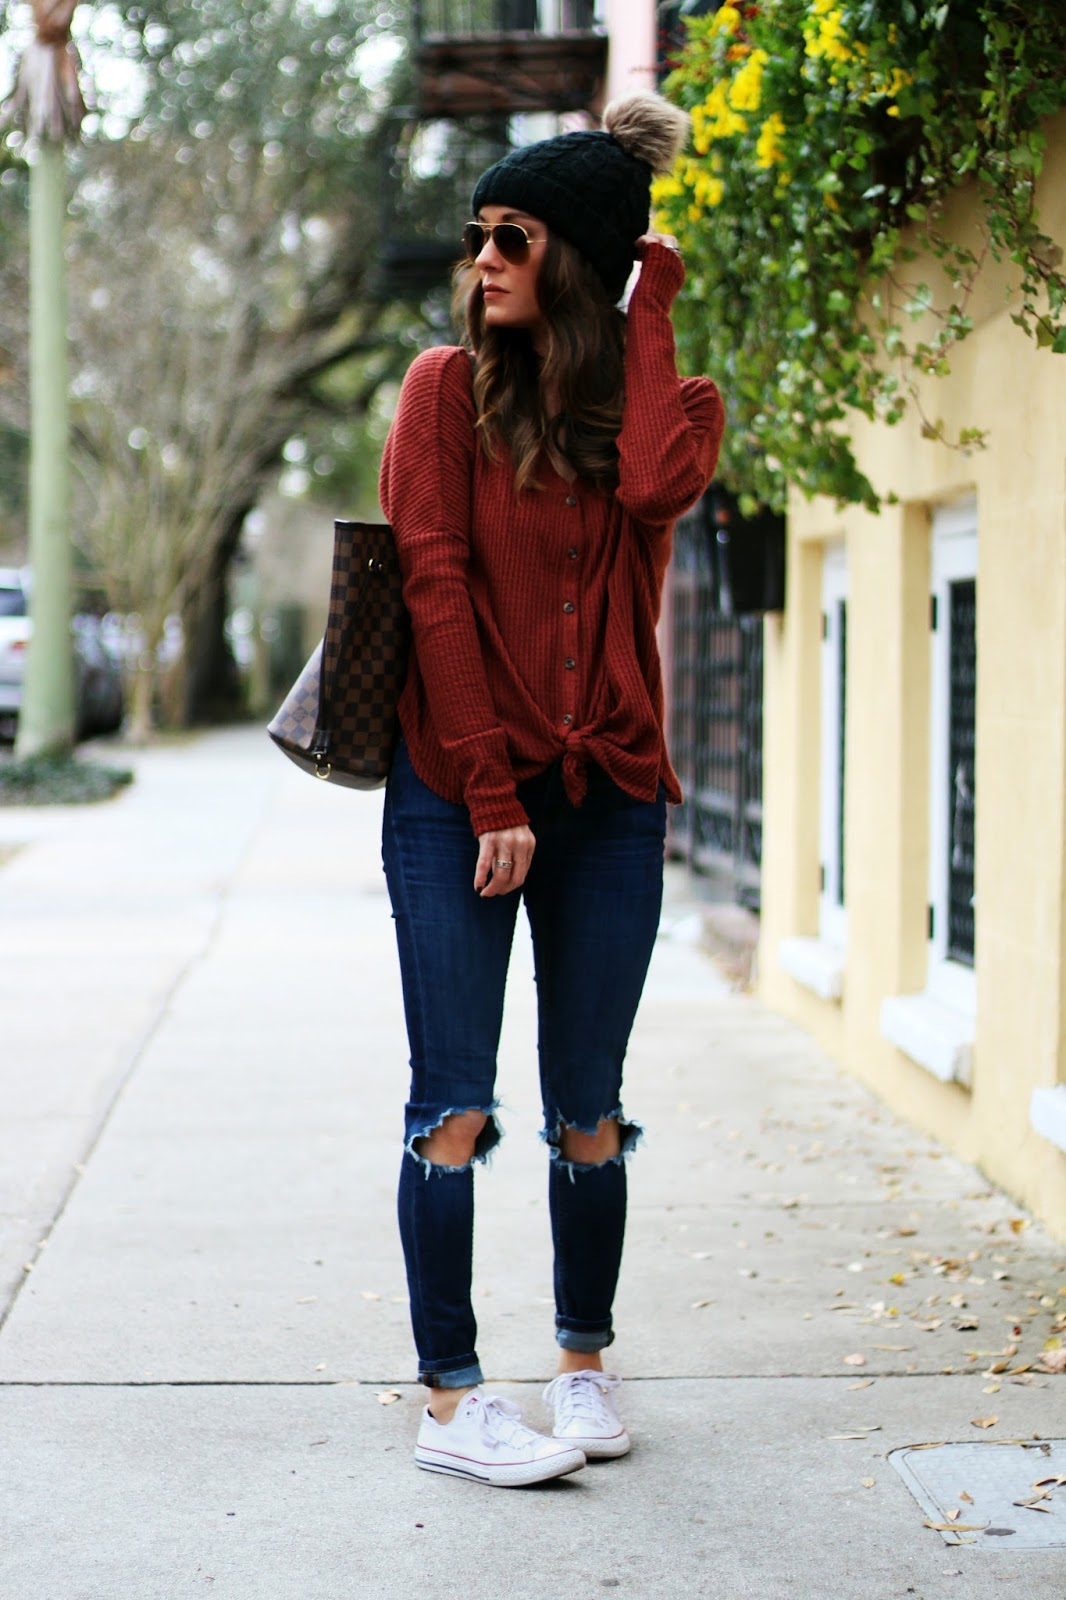 Urban Outfitters Thermal Outfit